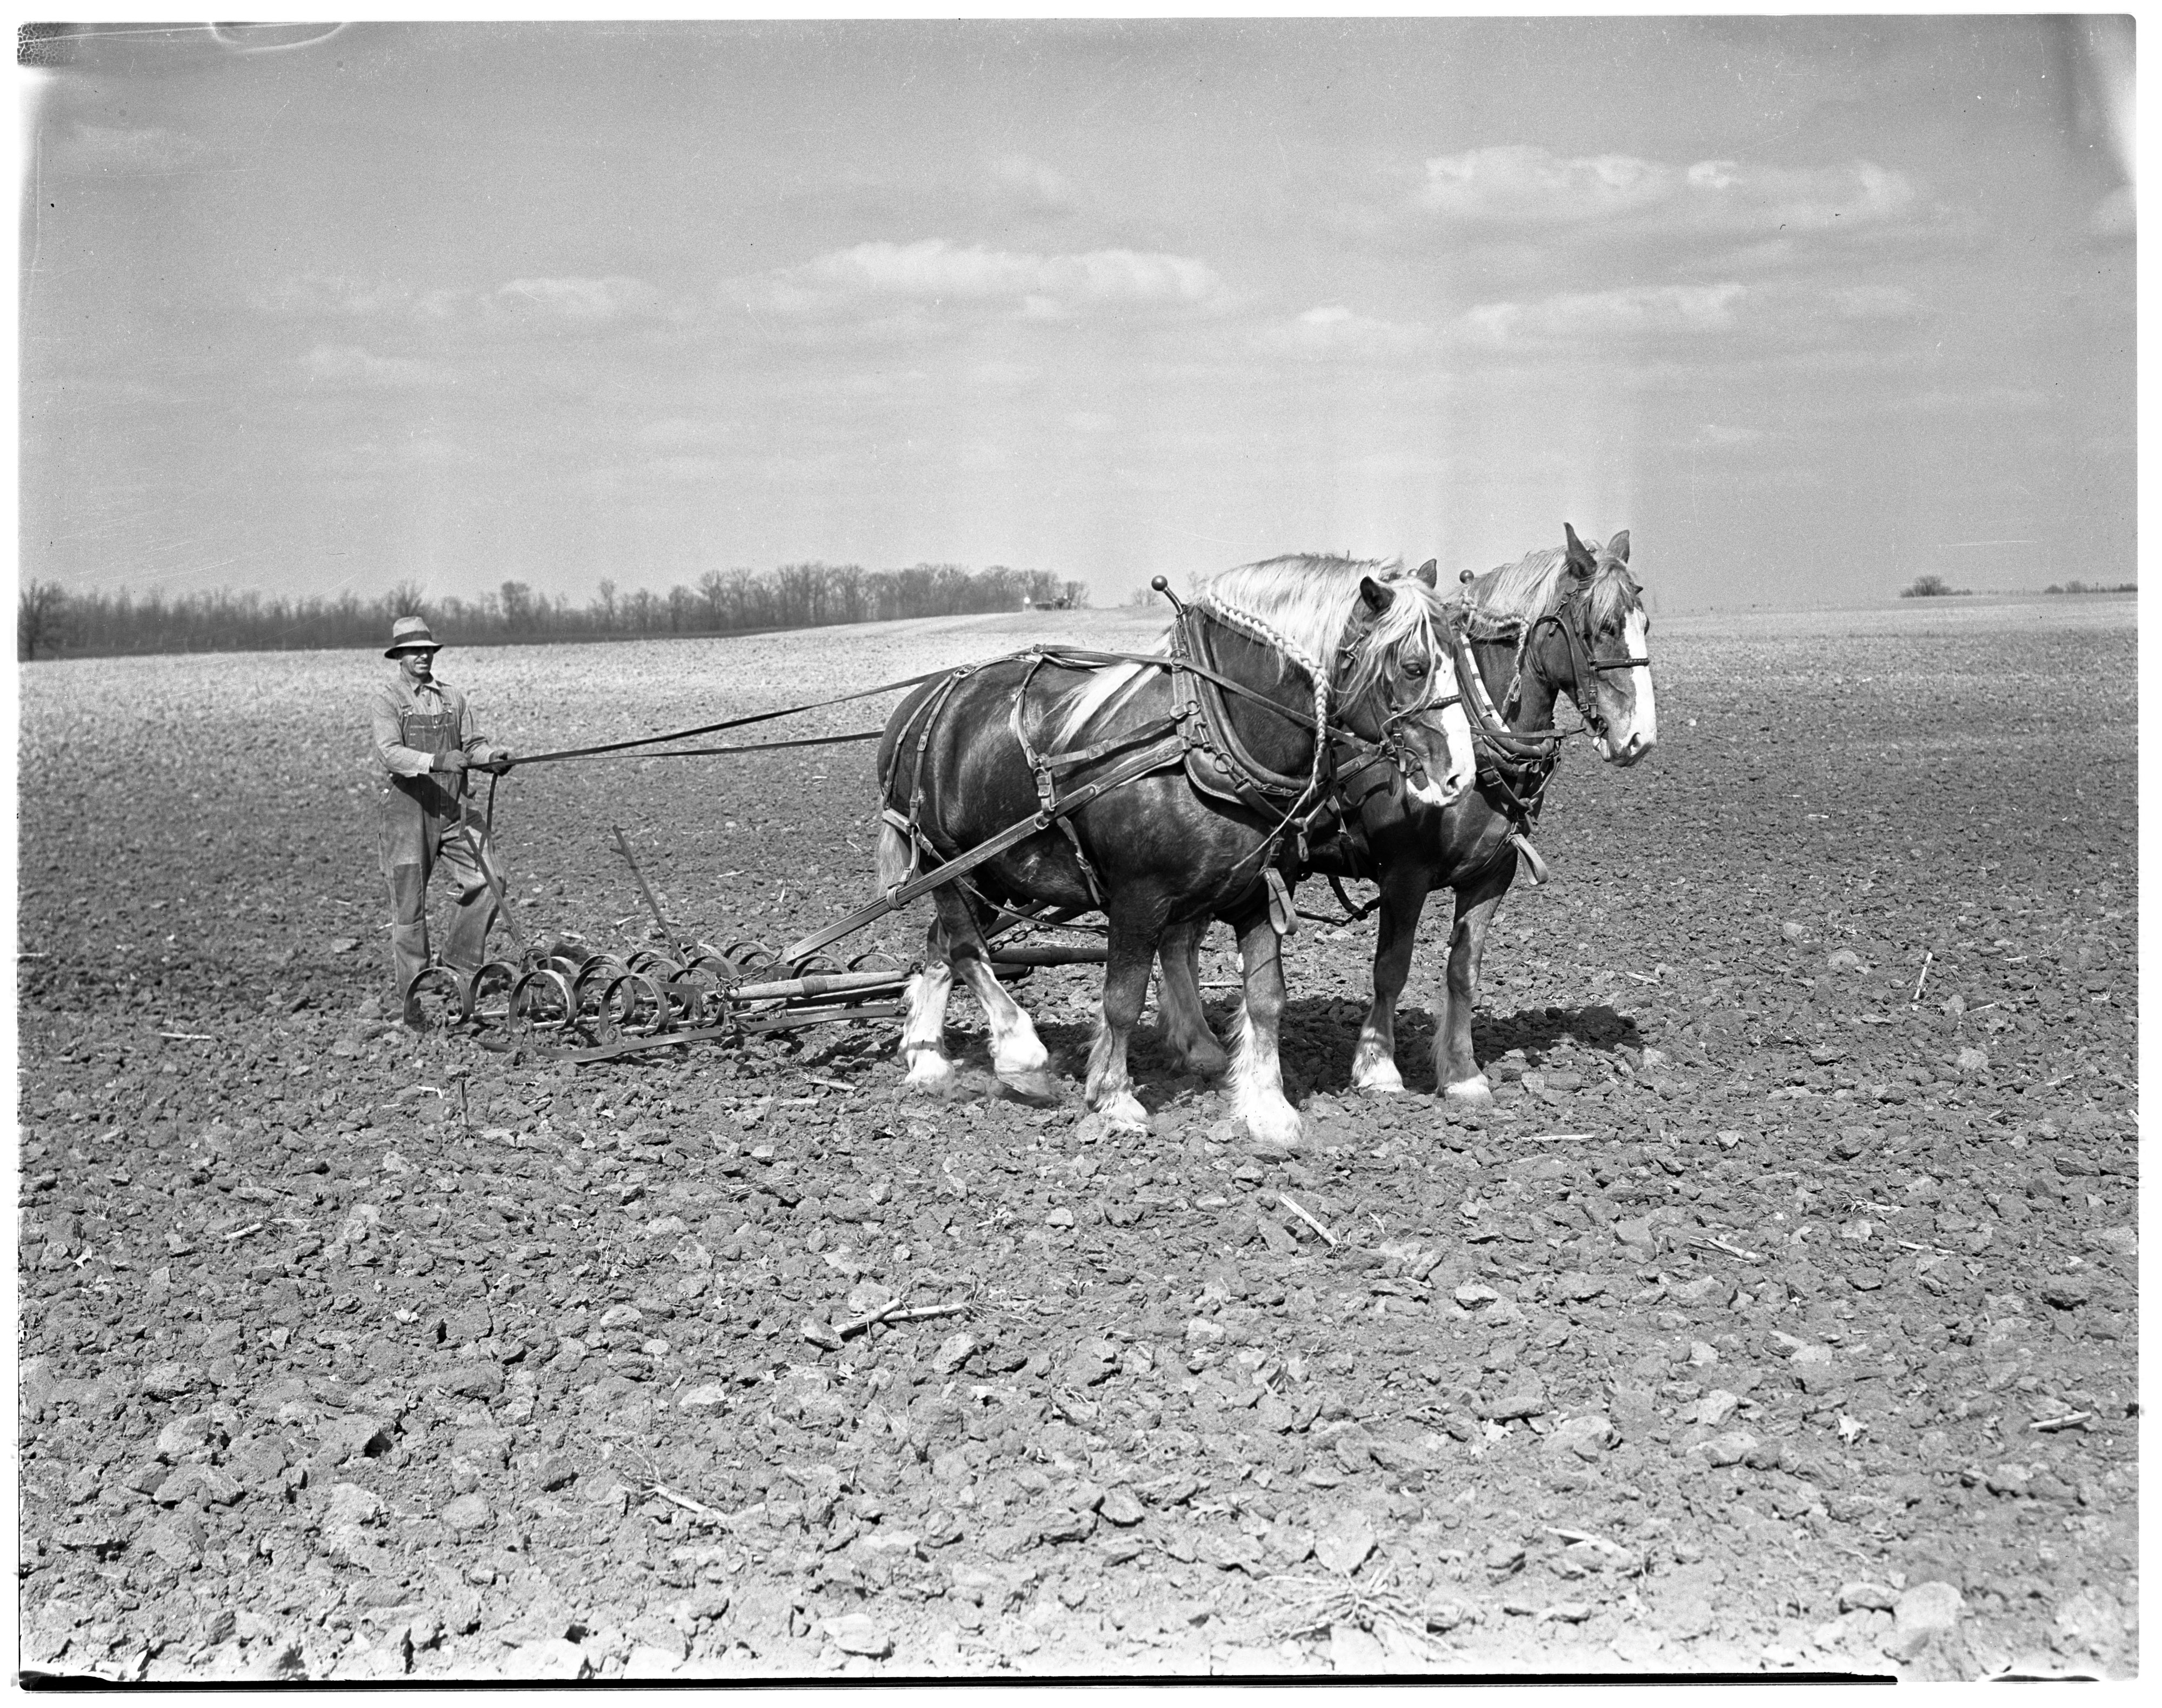 Working the Fields image